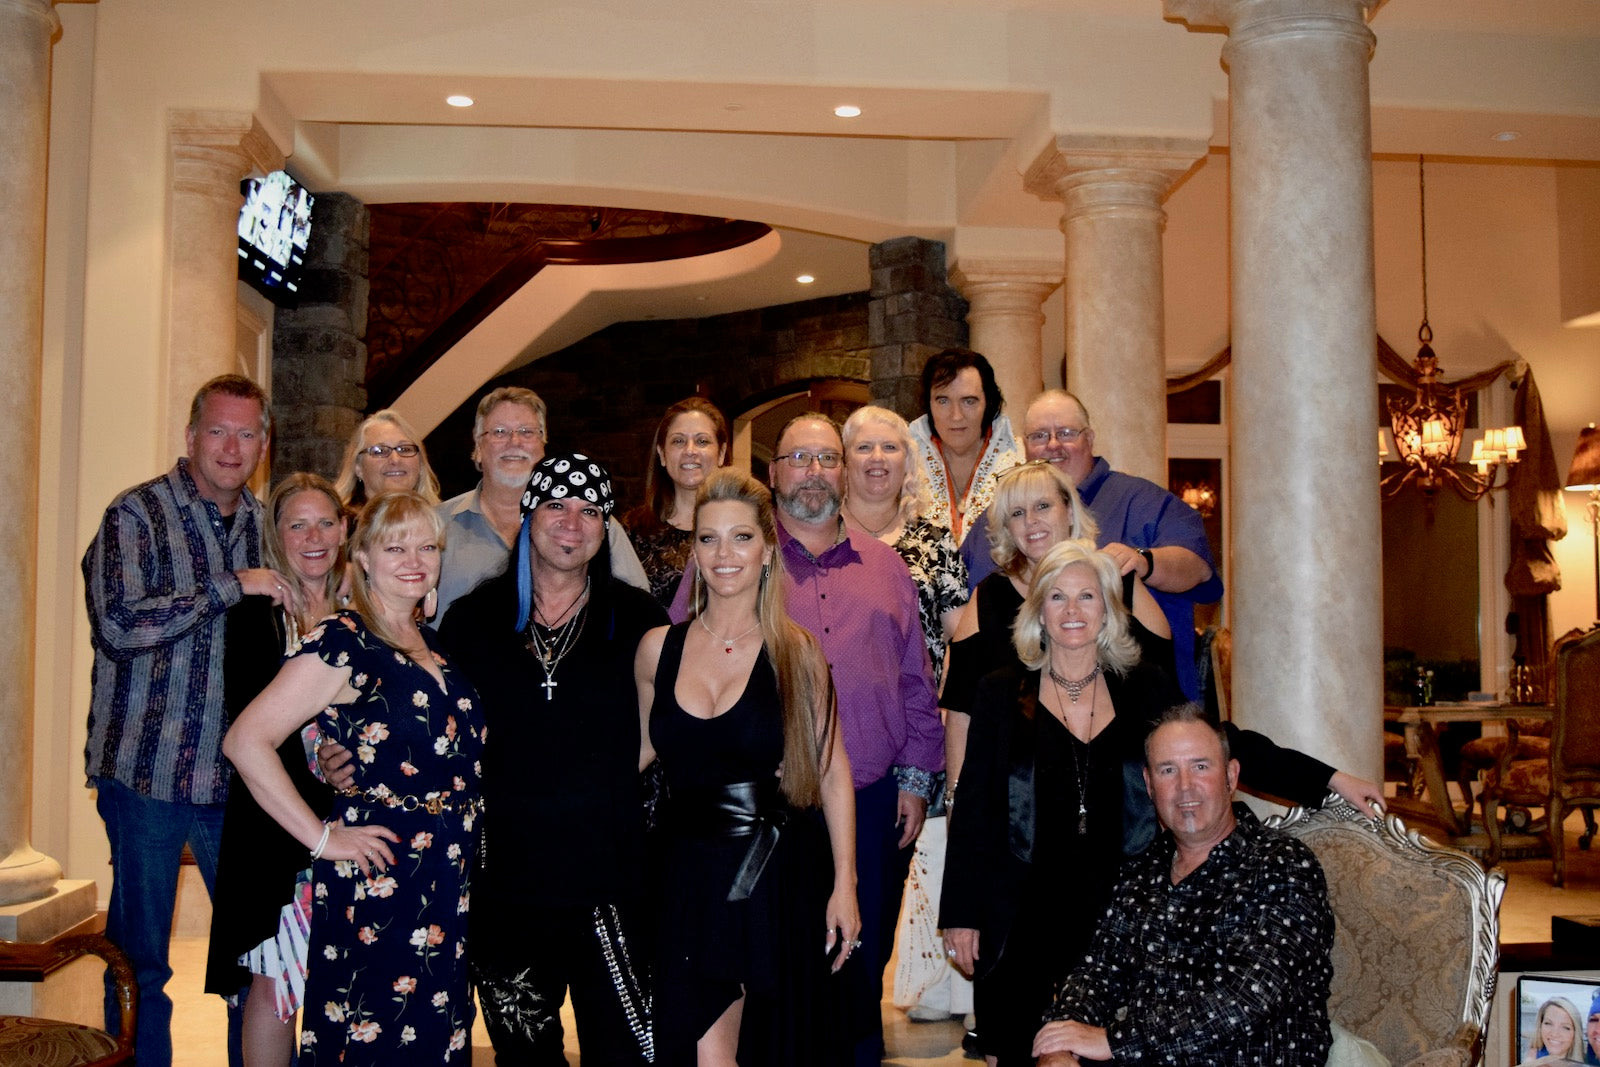 Group photograph at VIP Dinner with Godard event in Las Vegas  at Michael Godard's home